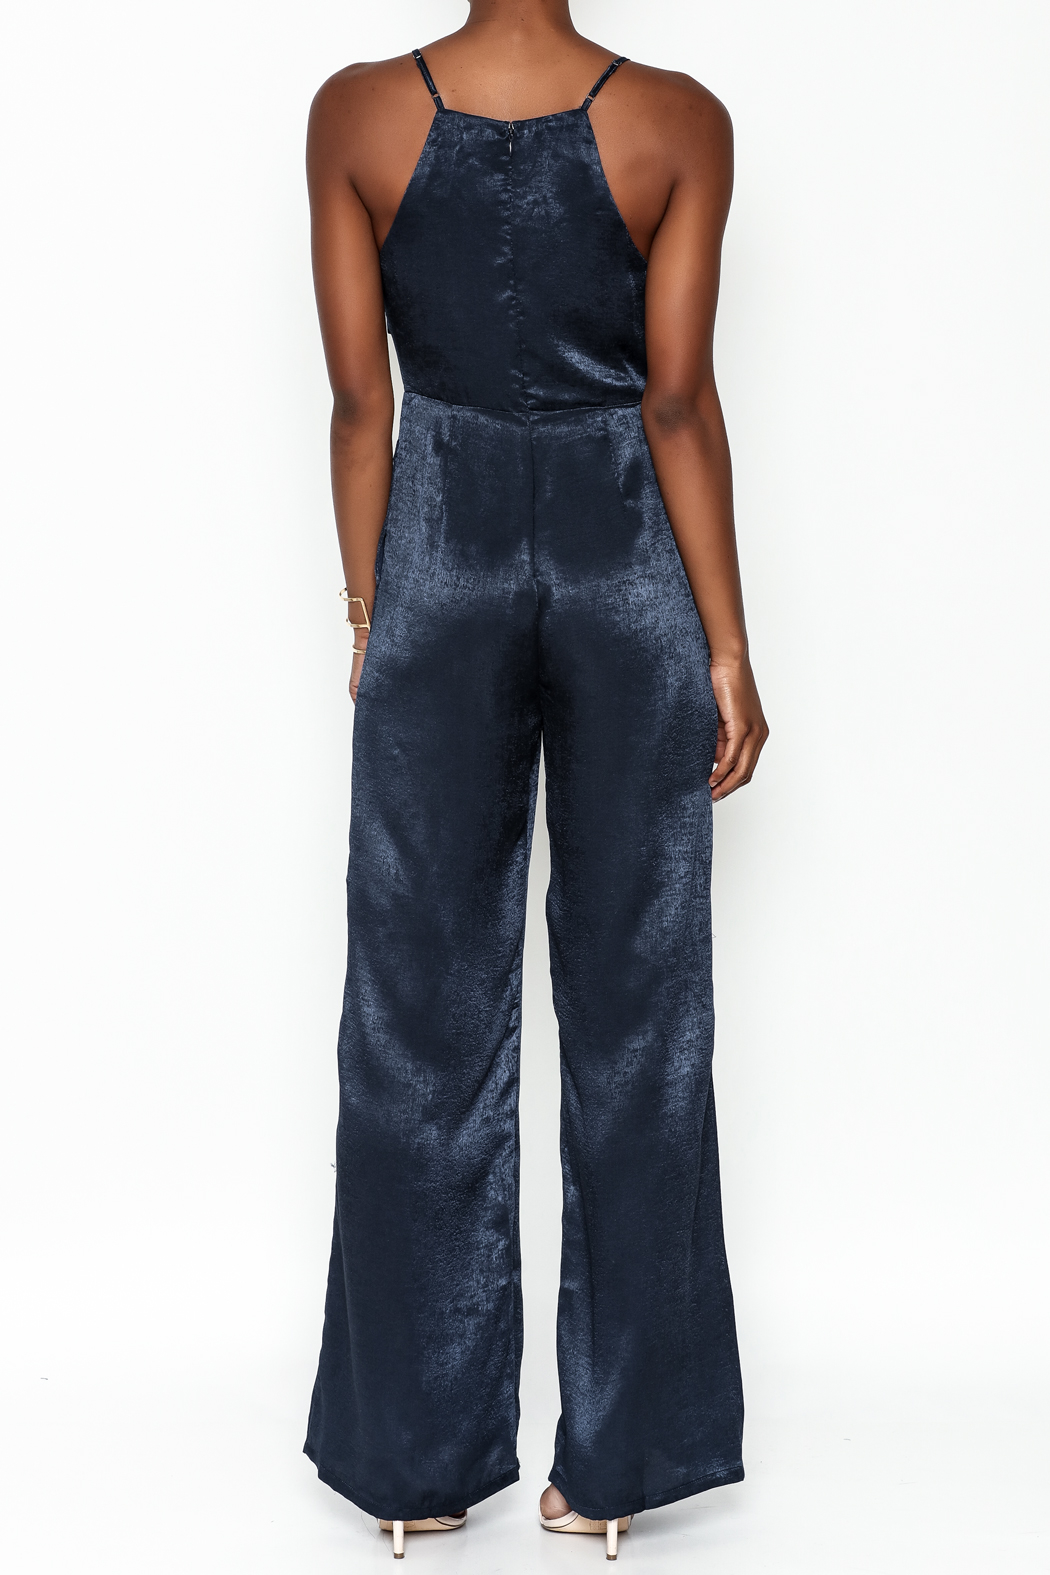 Hommage Bow Front Jumpsuit - Back Cropped Image